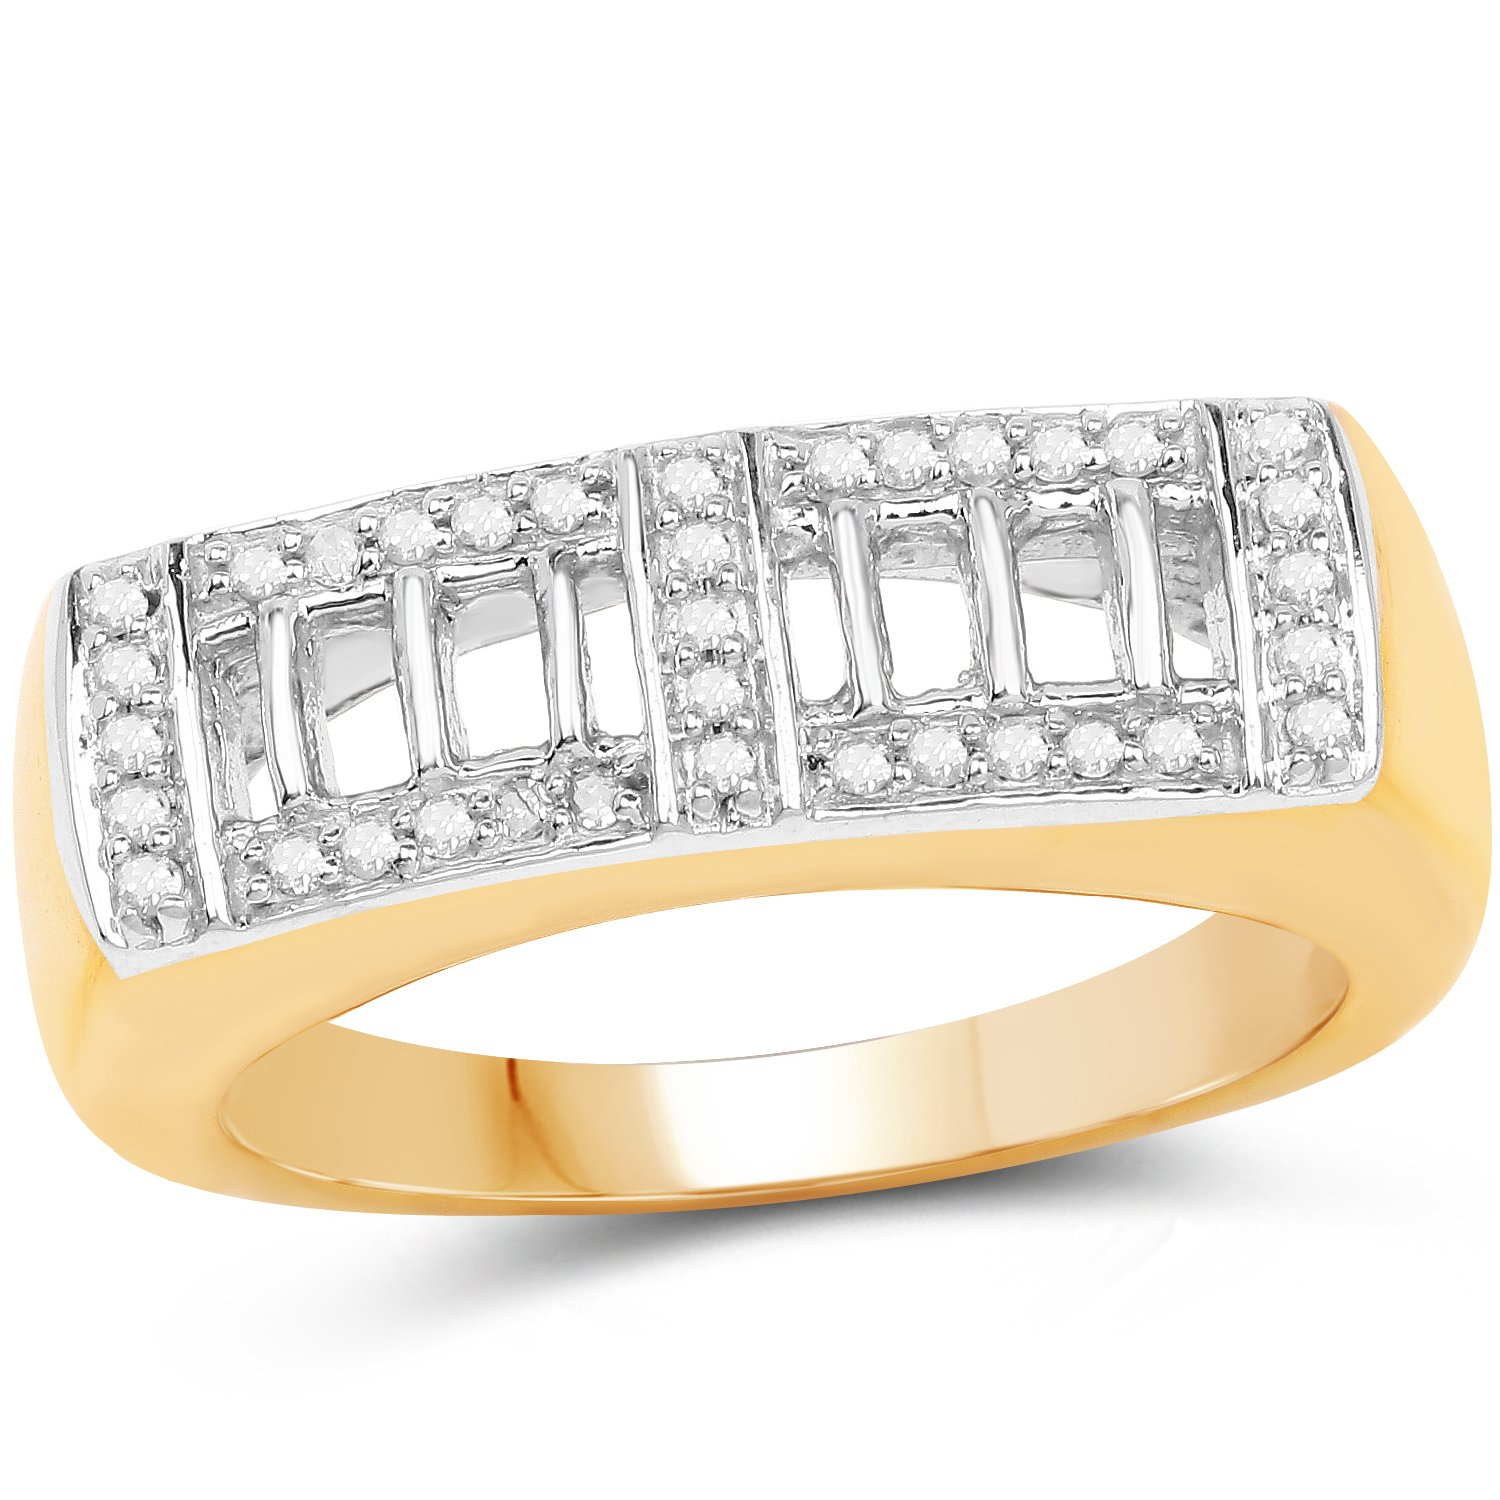 f579da01b8926 925 Sterling Silver & 14K Yellow Gold Plated Genuine White Diamond ...